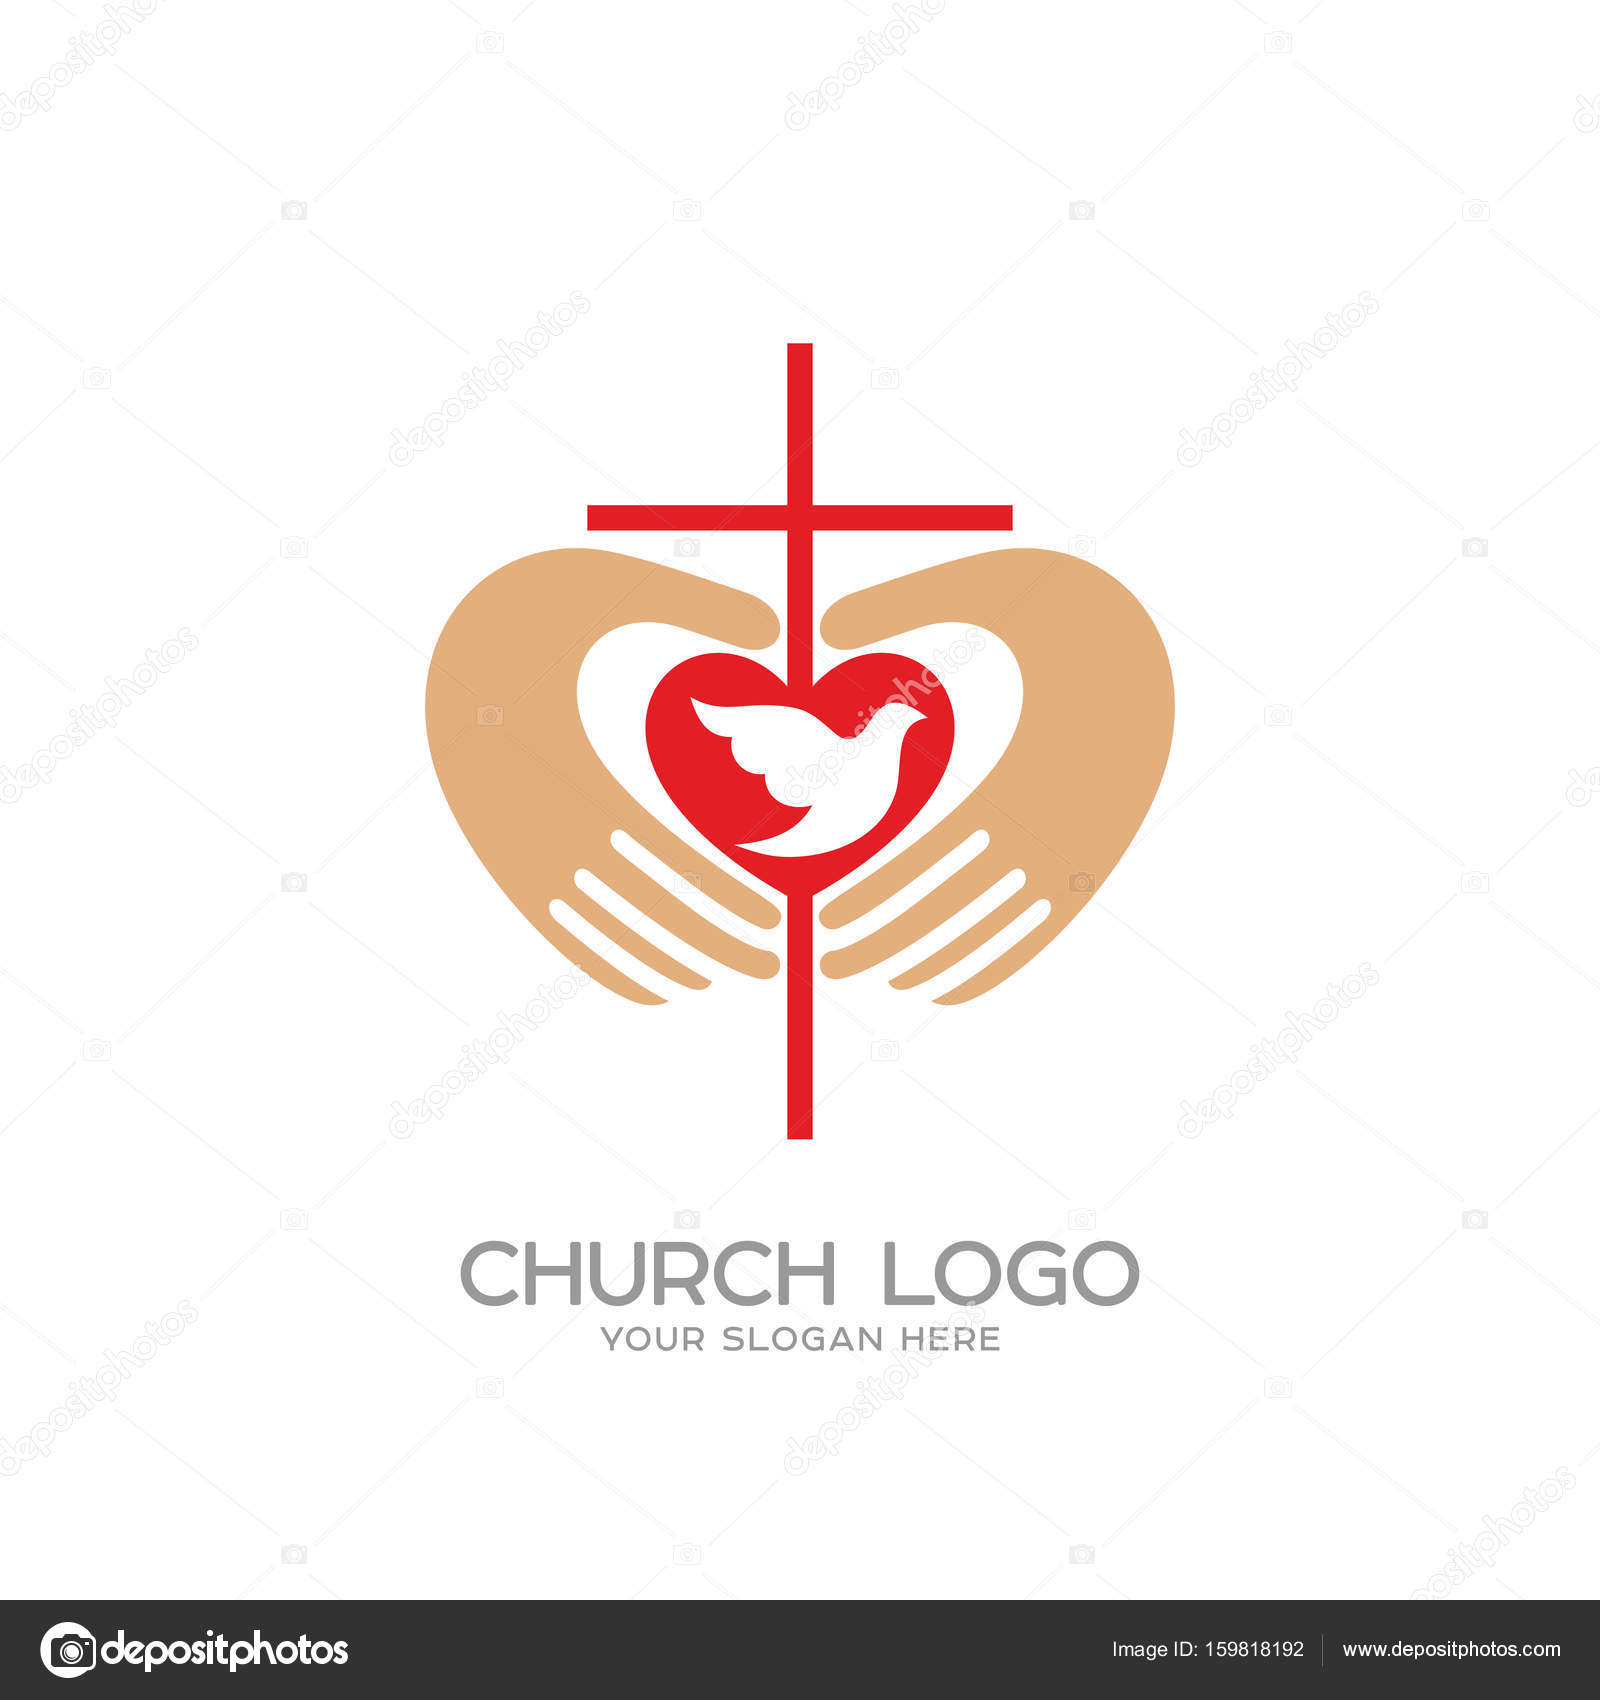 Church logo christian symbols the cross and the hands of christ church logo christian symbols the cross and the hands of christ the heart and the dove vector by biblebox thecheapjerseys Images